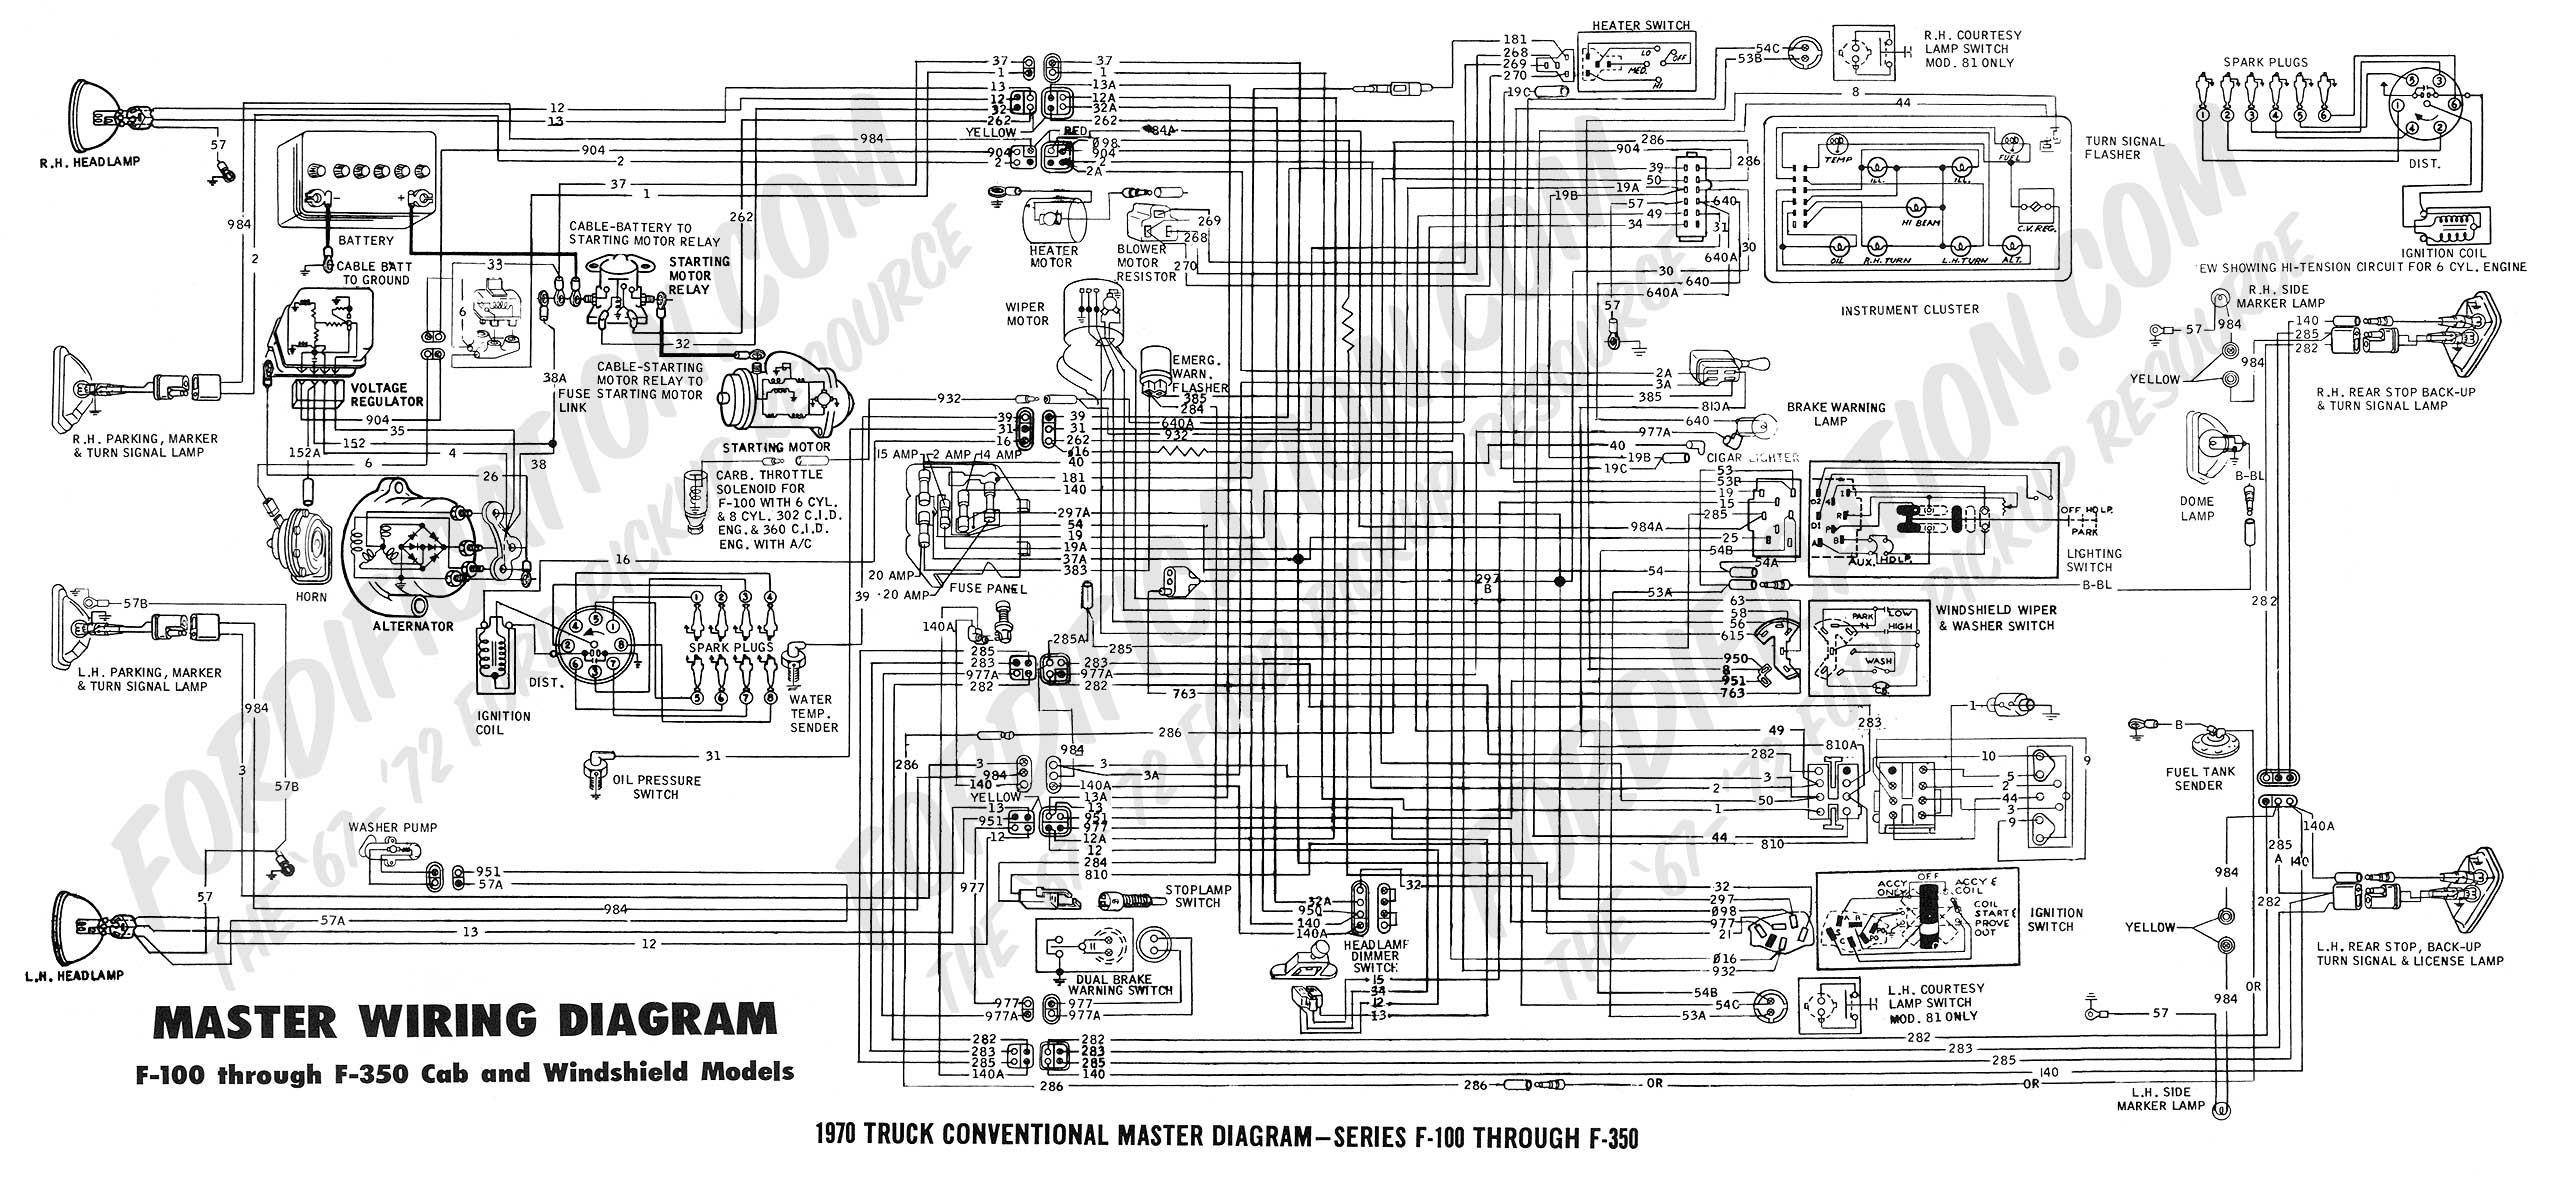 Wiring Diagram Master on 1996 Dodge Dakota Fuse Box Diagram